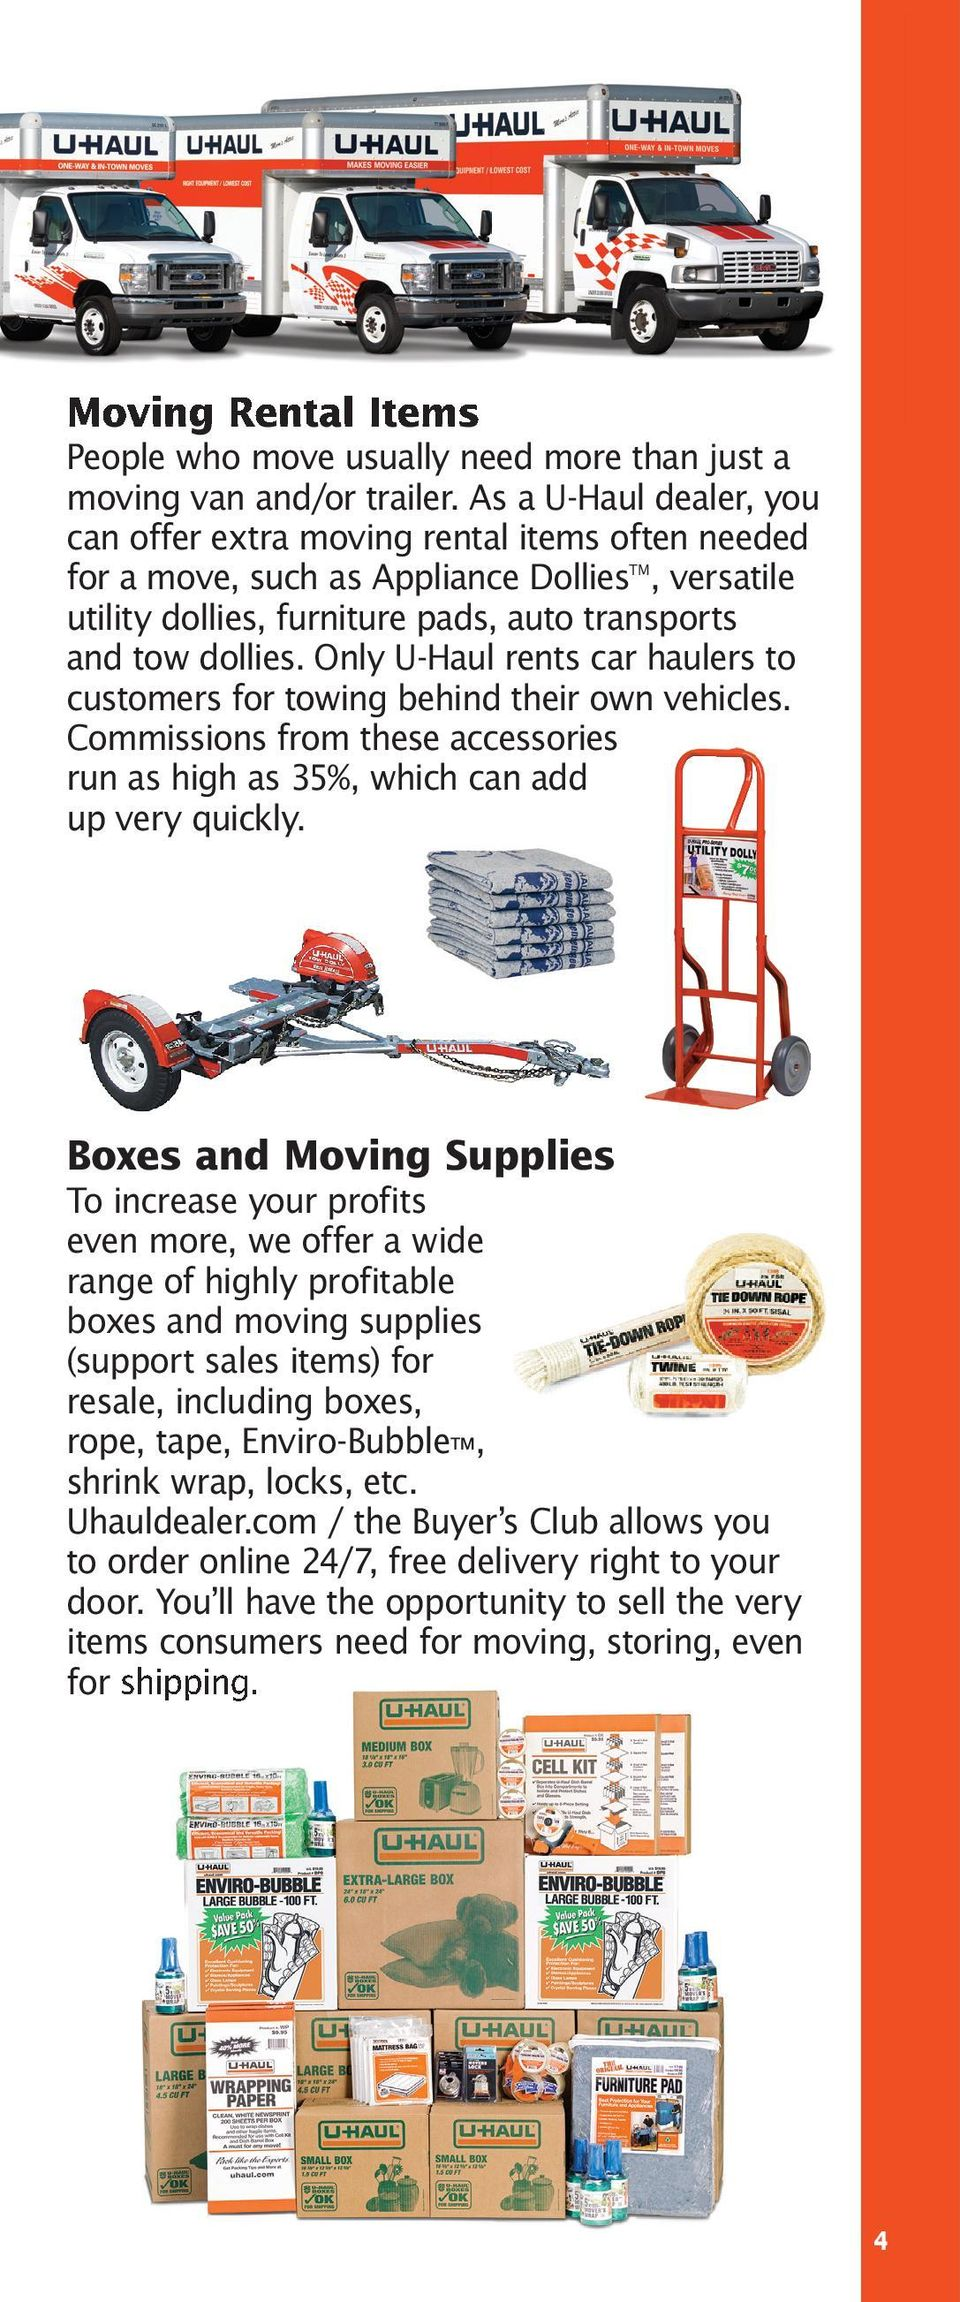 Only U-Haul rents car haulers to customers for towing behind their own vehicles. Commissions from these accessories run as high as 35%, which can add up very quickly.